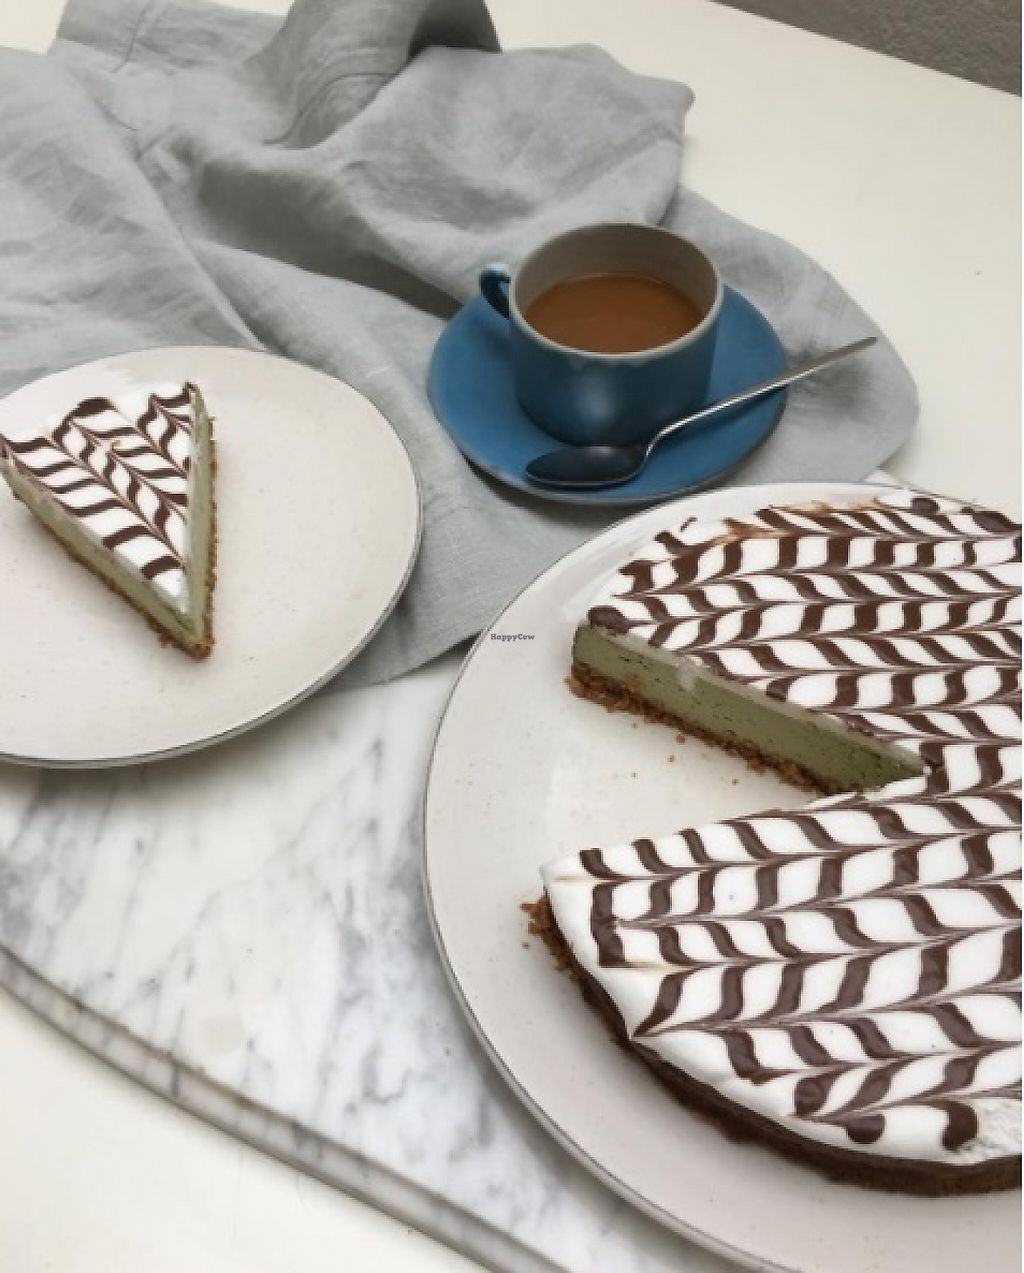 """Photo of Strata Bakery  by <a href=""""/members/profile/LluviCaron"""">LluviCaron</a> <br/>Matcha vegan cheescake <br/> May 18, 2017  - <a href='/contact/abuse/image/92336/259736'>Report</a>"""